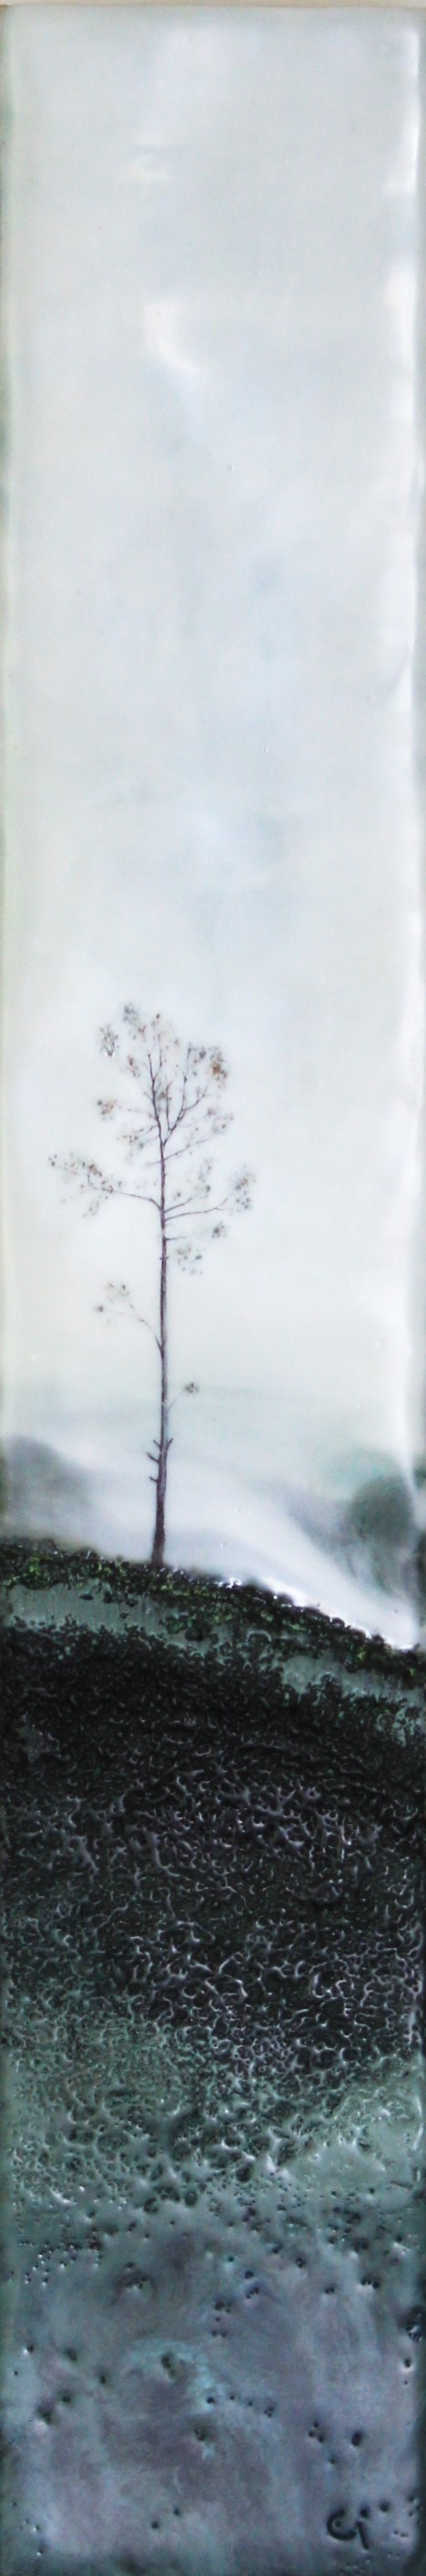 """Lake Effect""   3x18"" unframed  encaustic mixed media on cradle board  $225  2019"